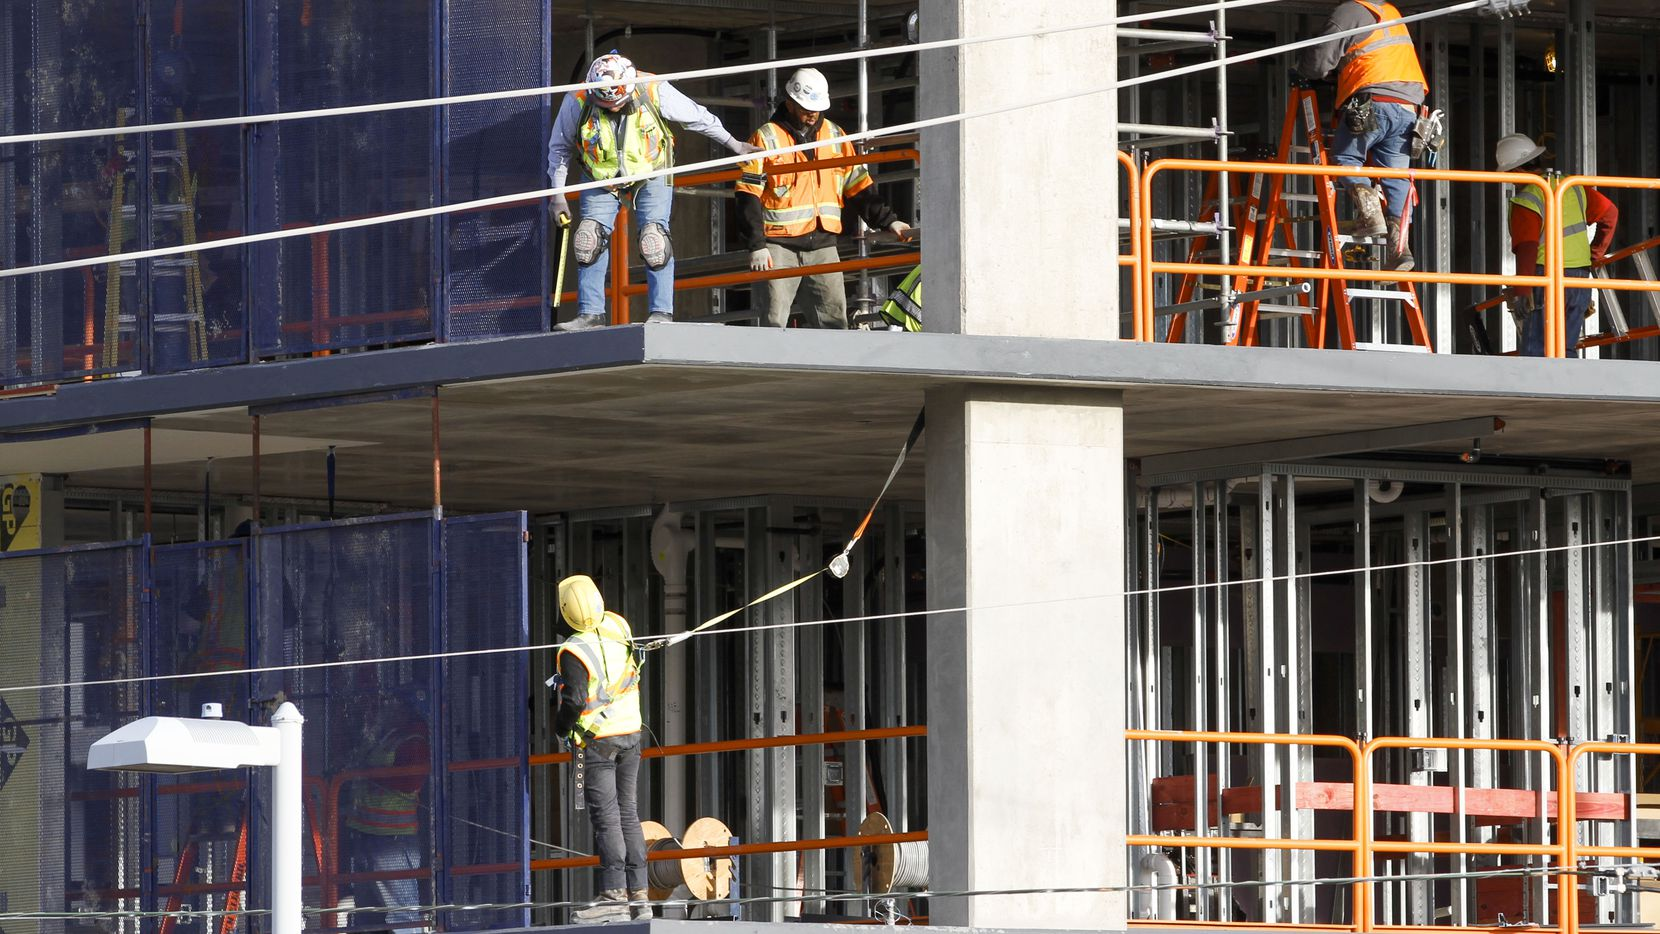 More than $11 billion in D-FW building starts were recorded in the first half of 2020.